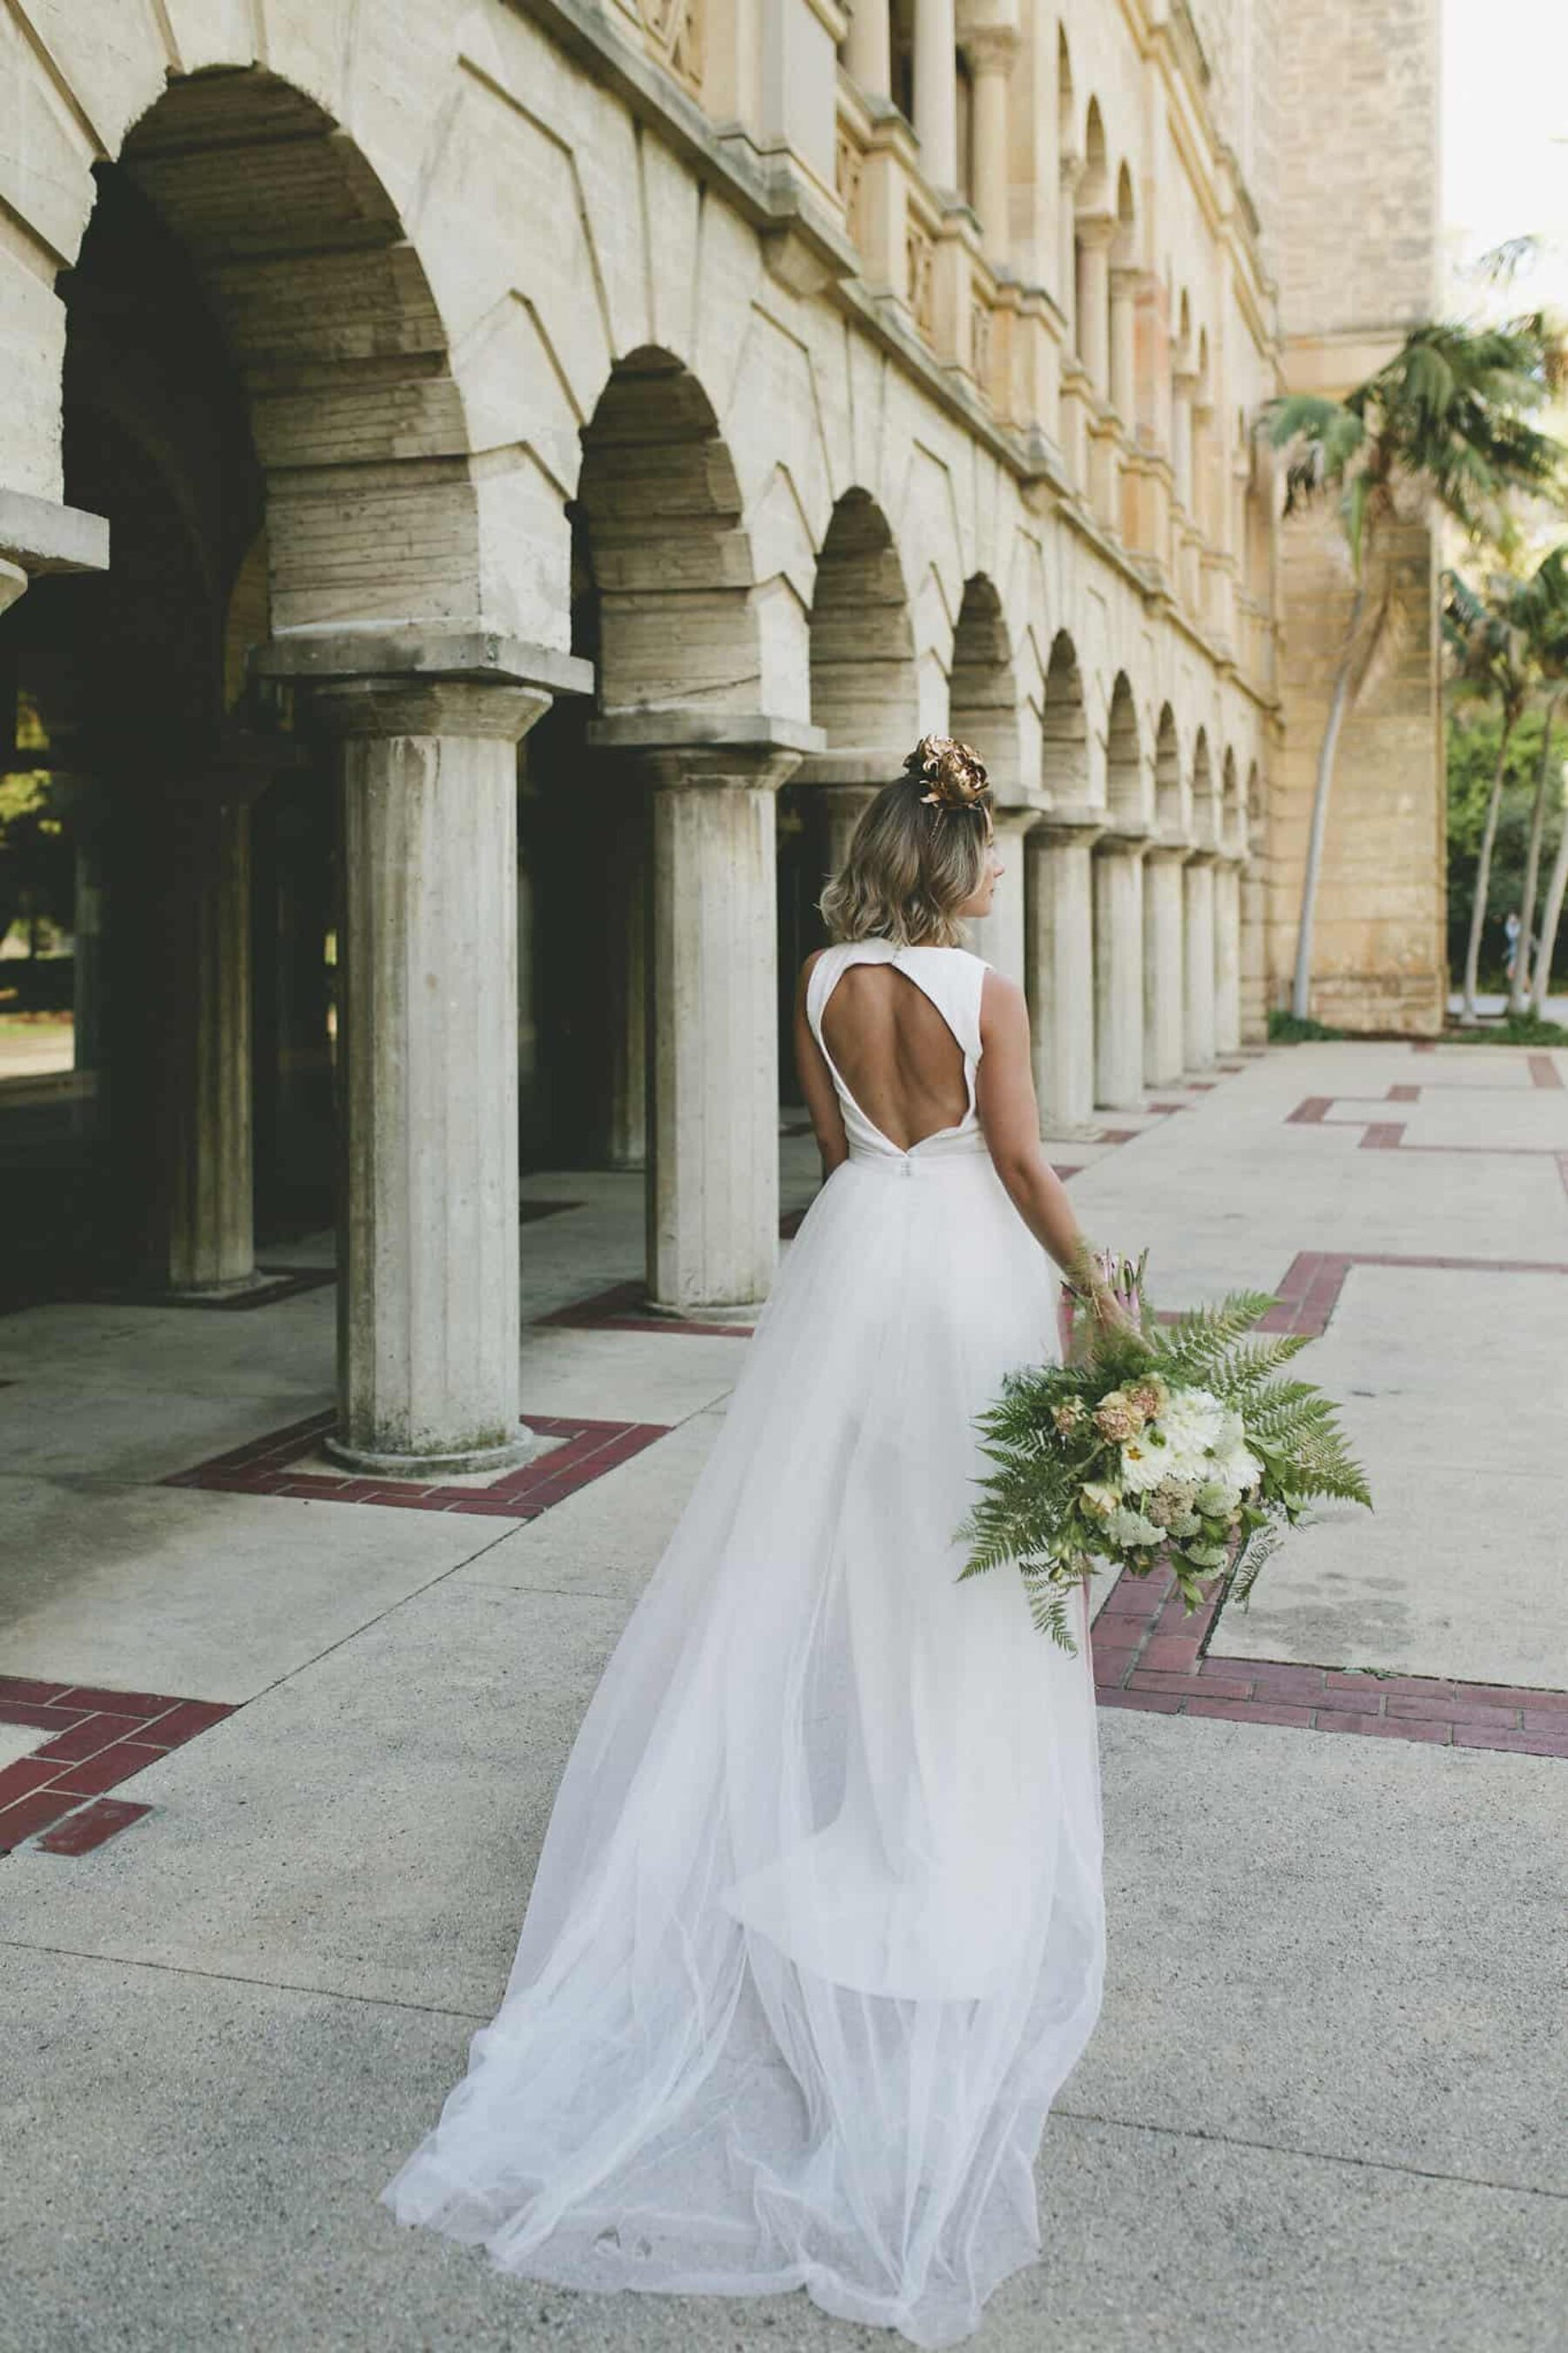 backless wedding dress with tulle skirt